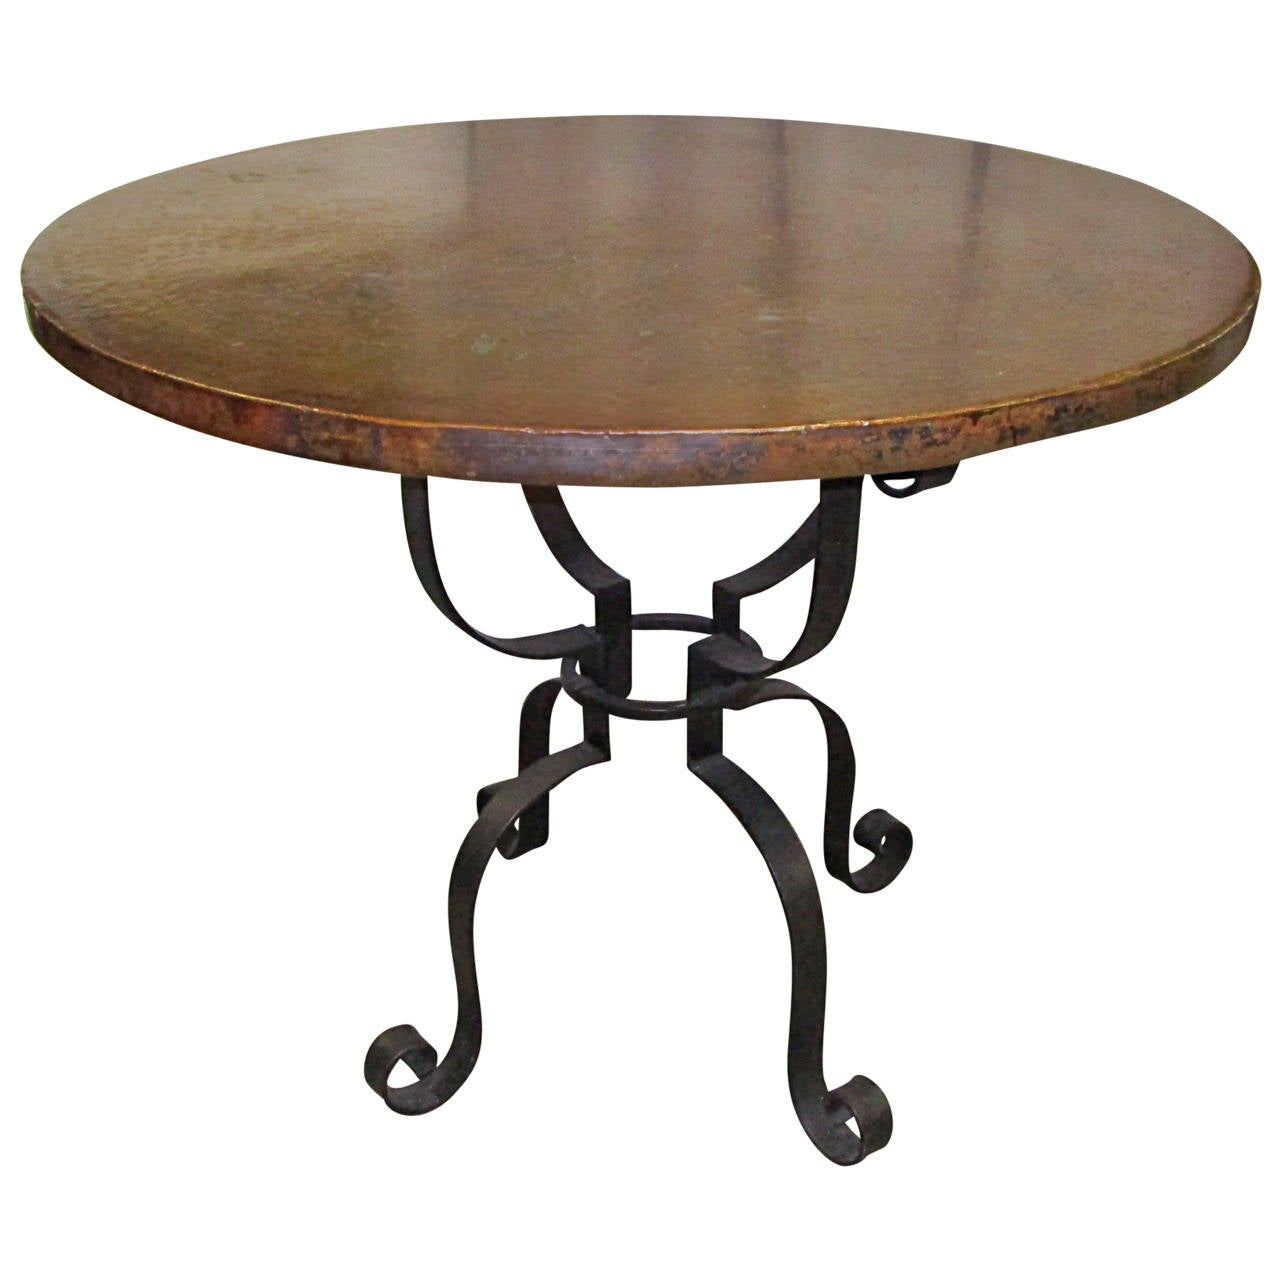 Hammered Copper and Forged Steel Occasional Table